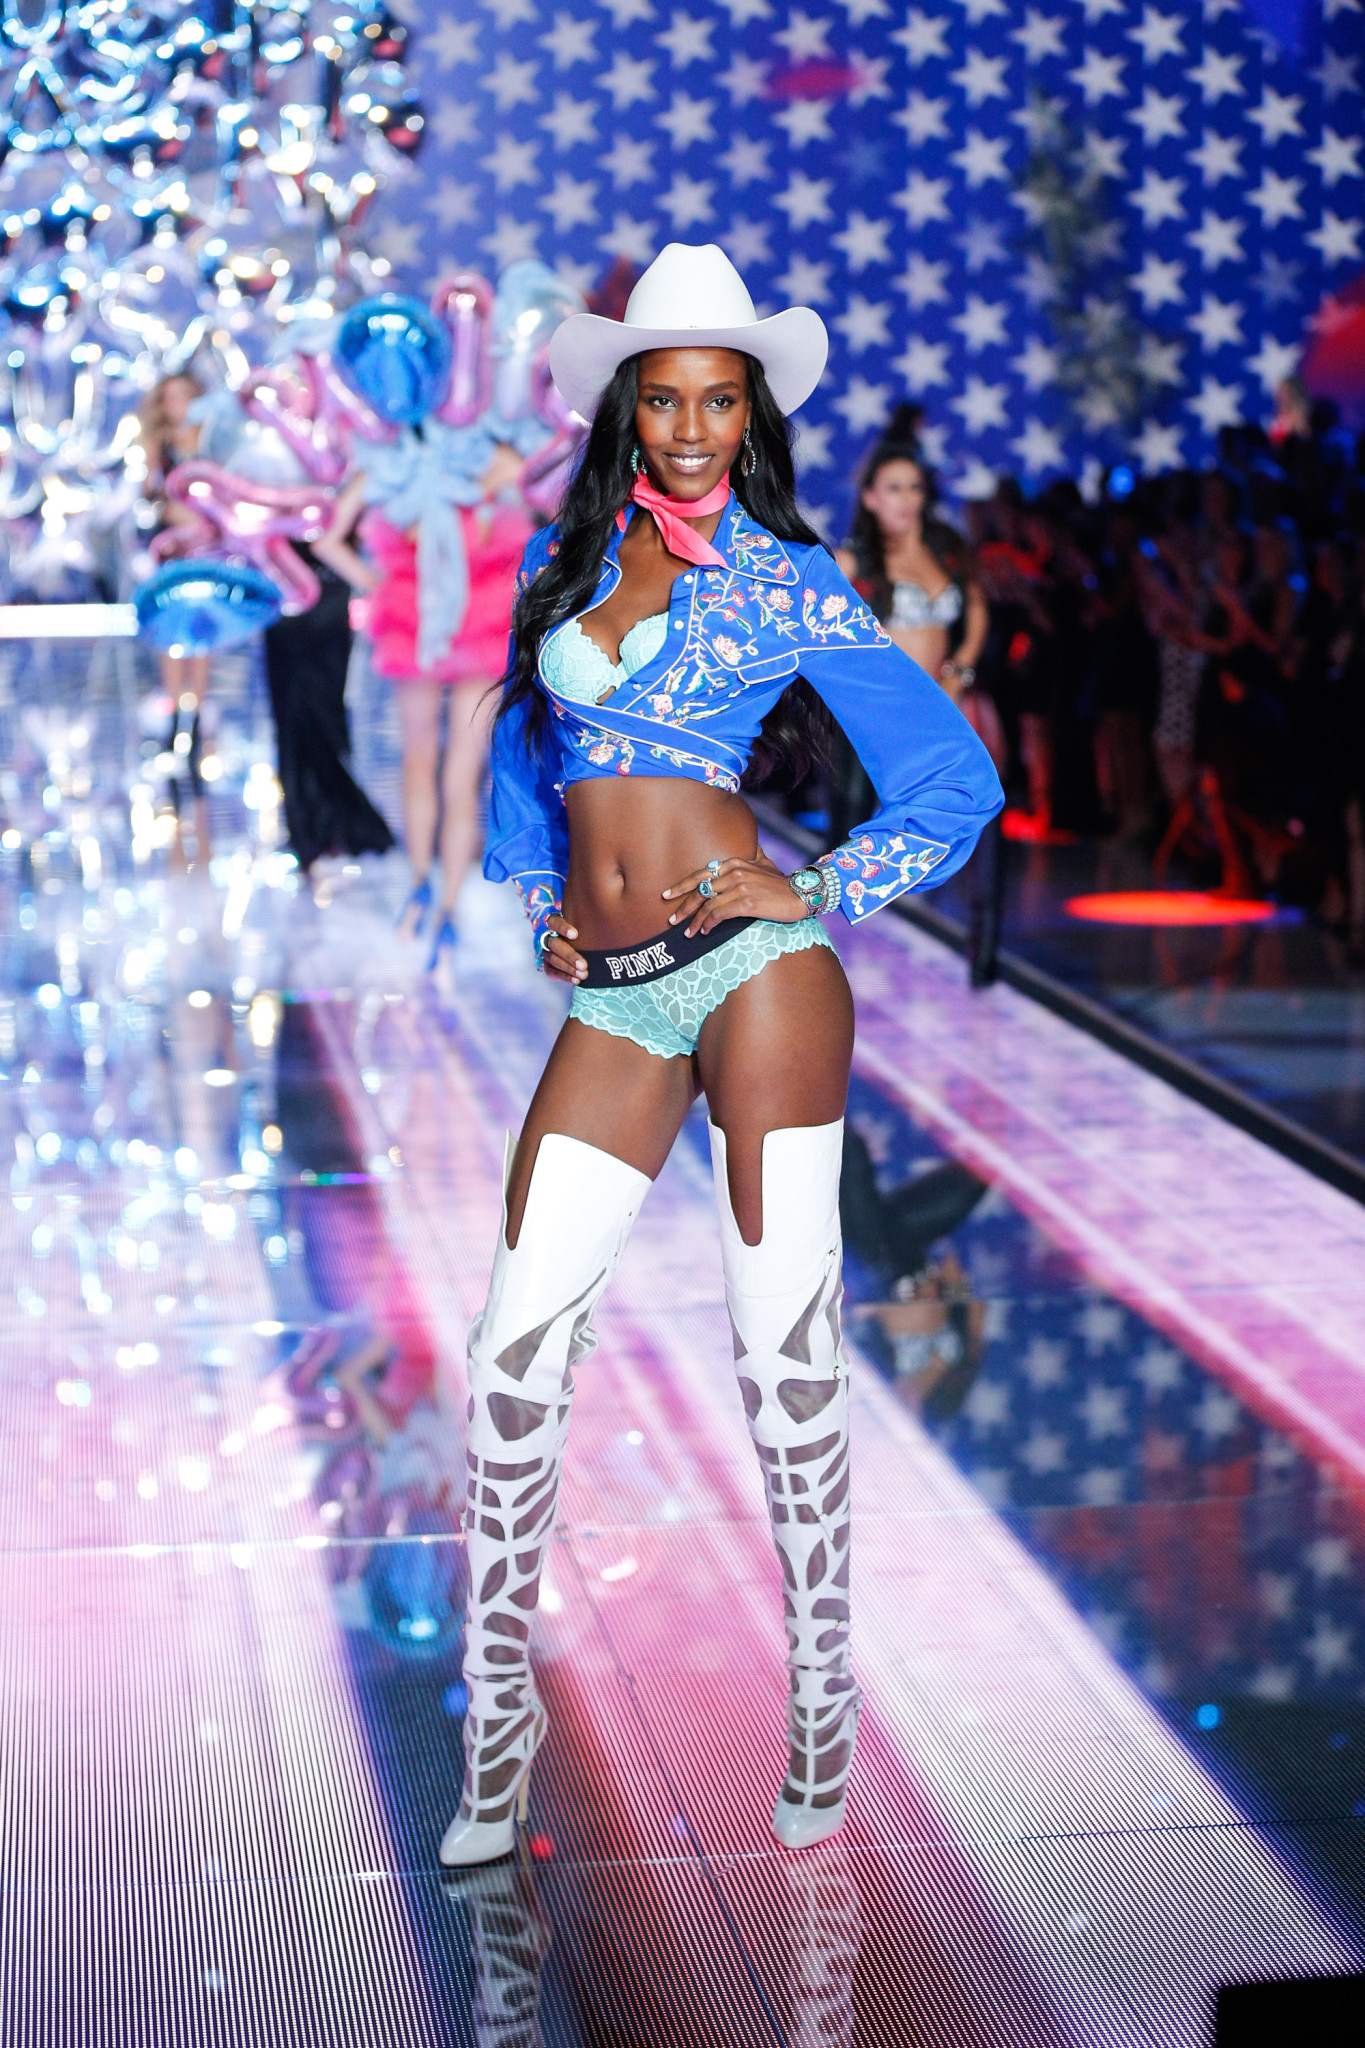 Leila Nda walks the runway at the 2015 Victoria's Secret Fashion Show in New York City on November 10th, 2015